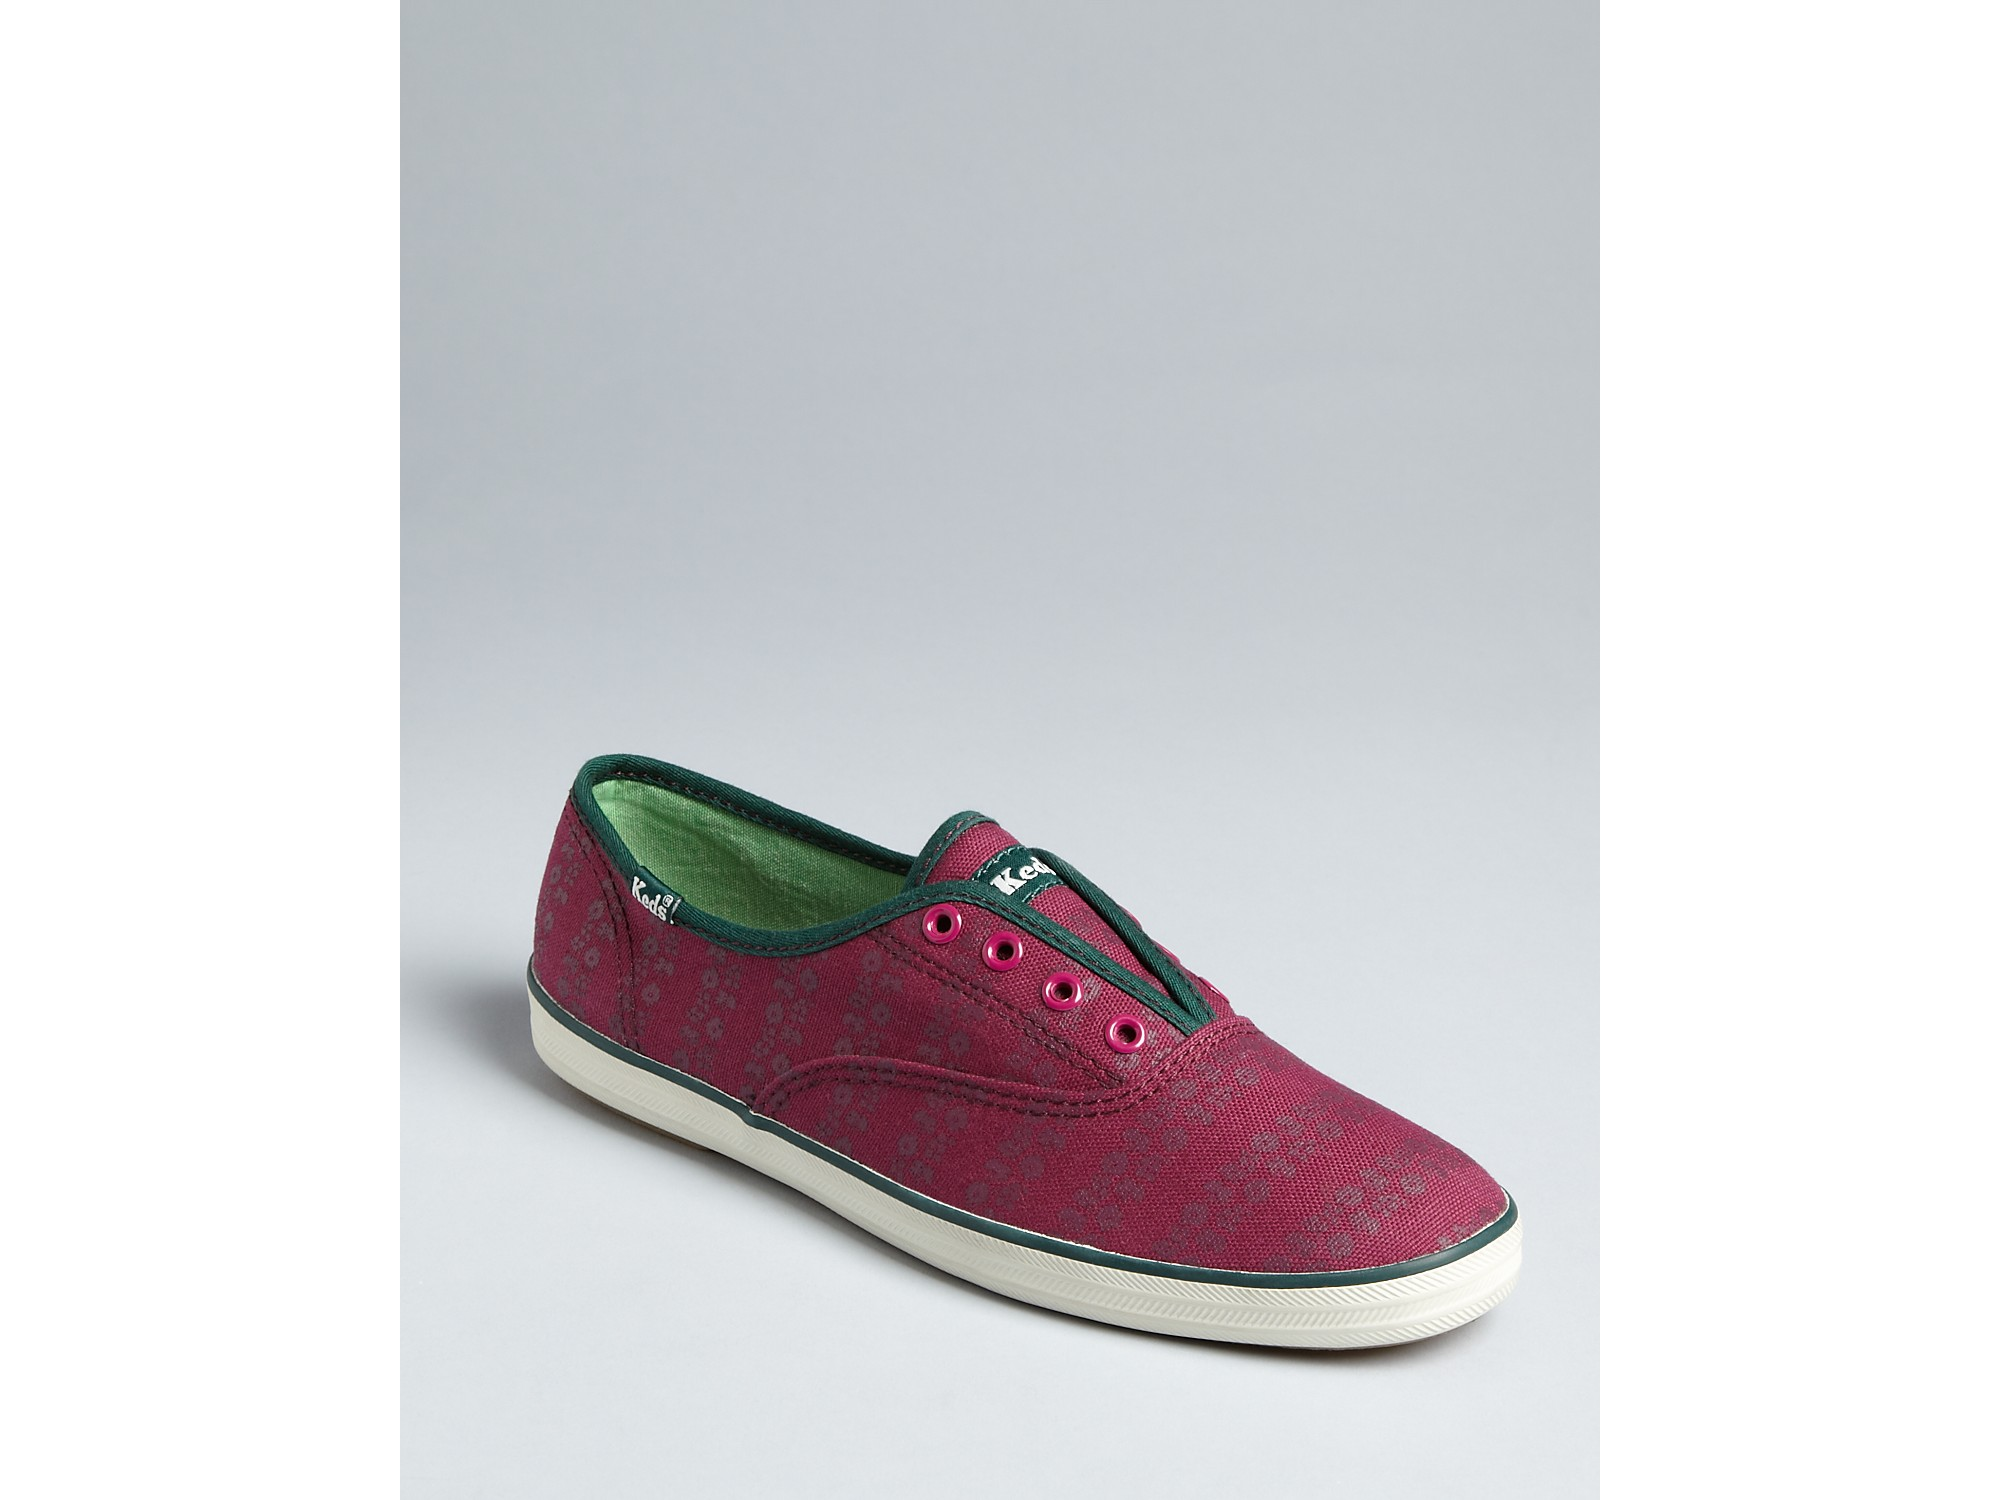 Slip On Printed Keds Shoes